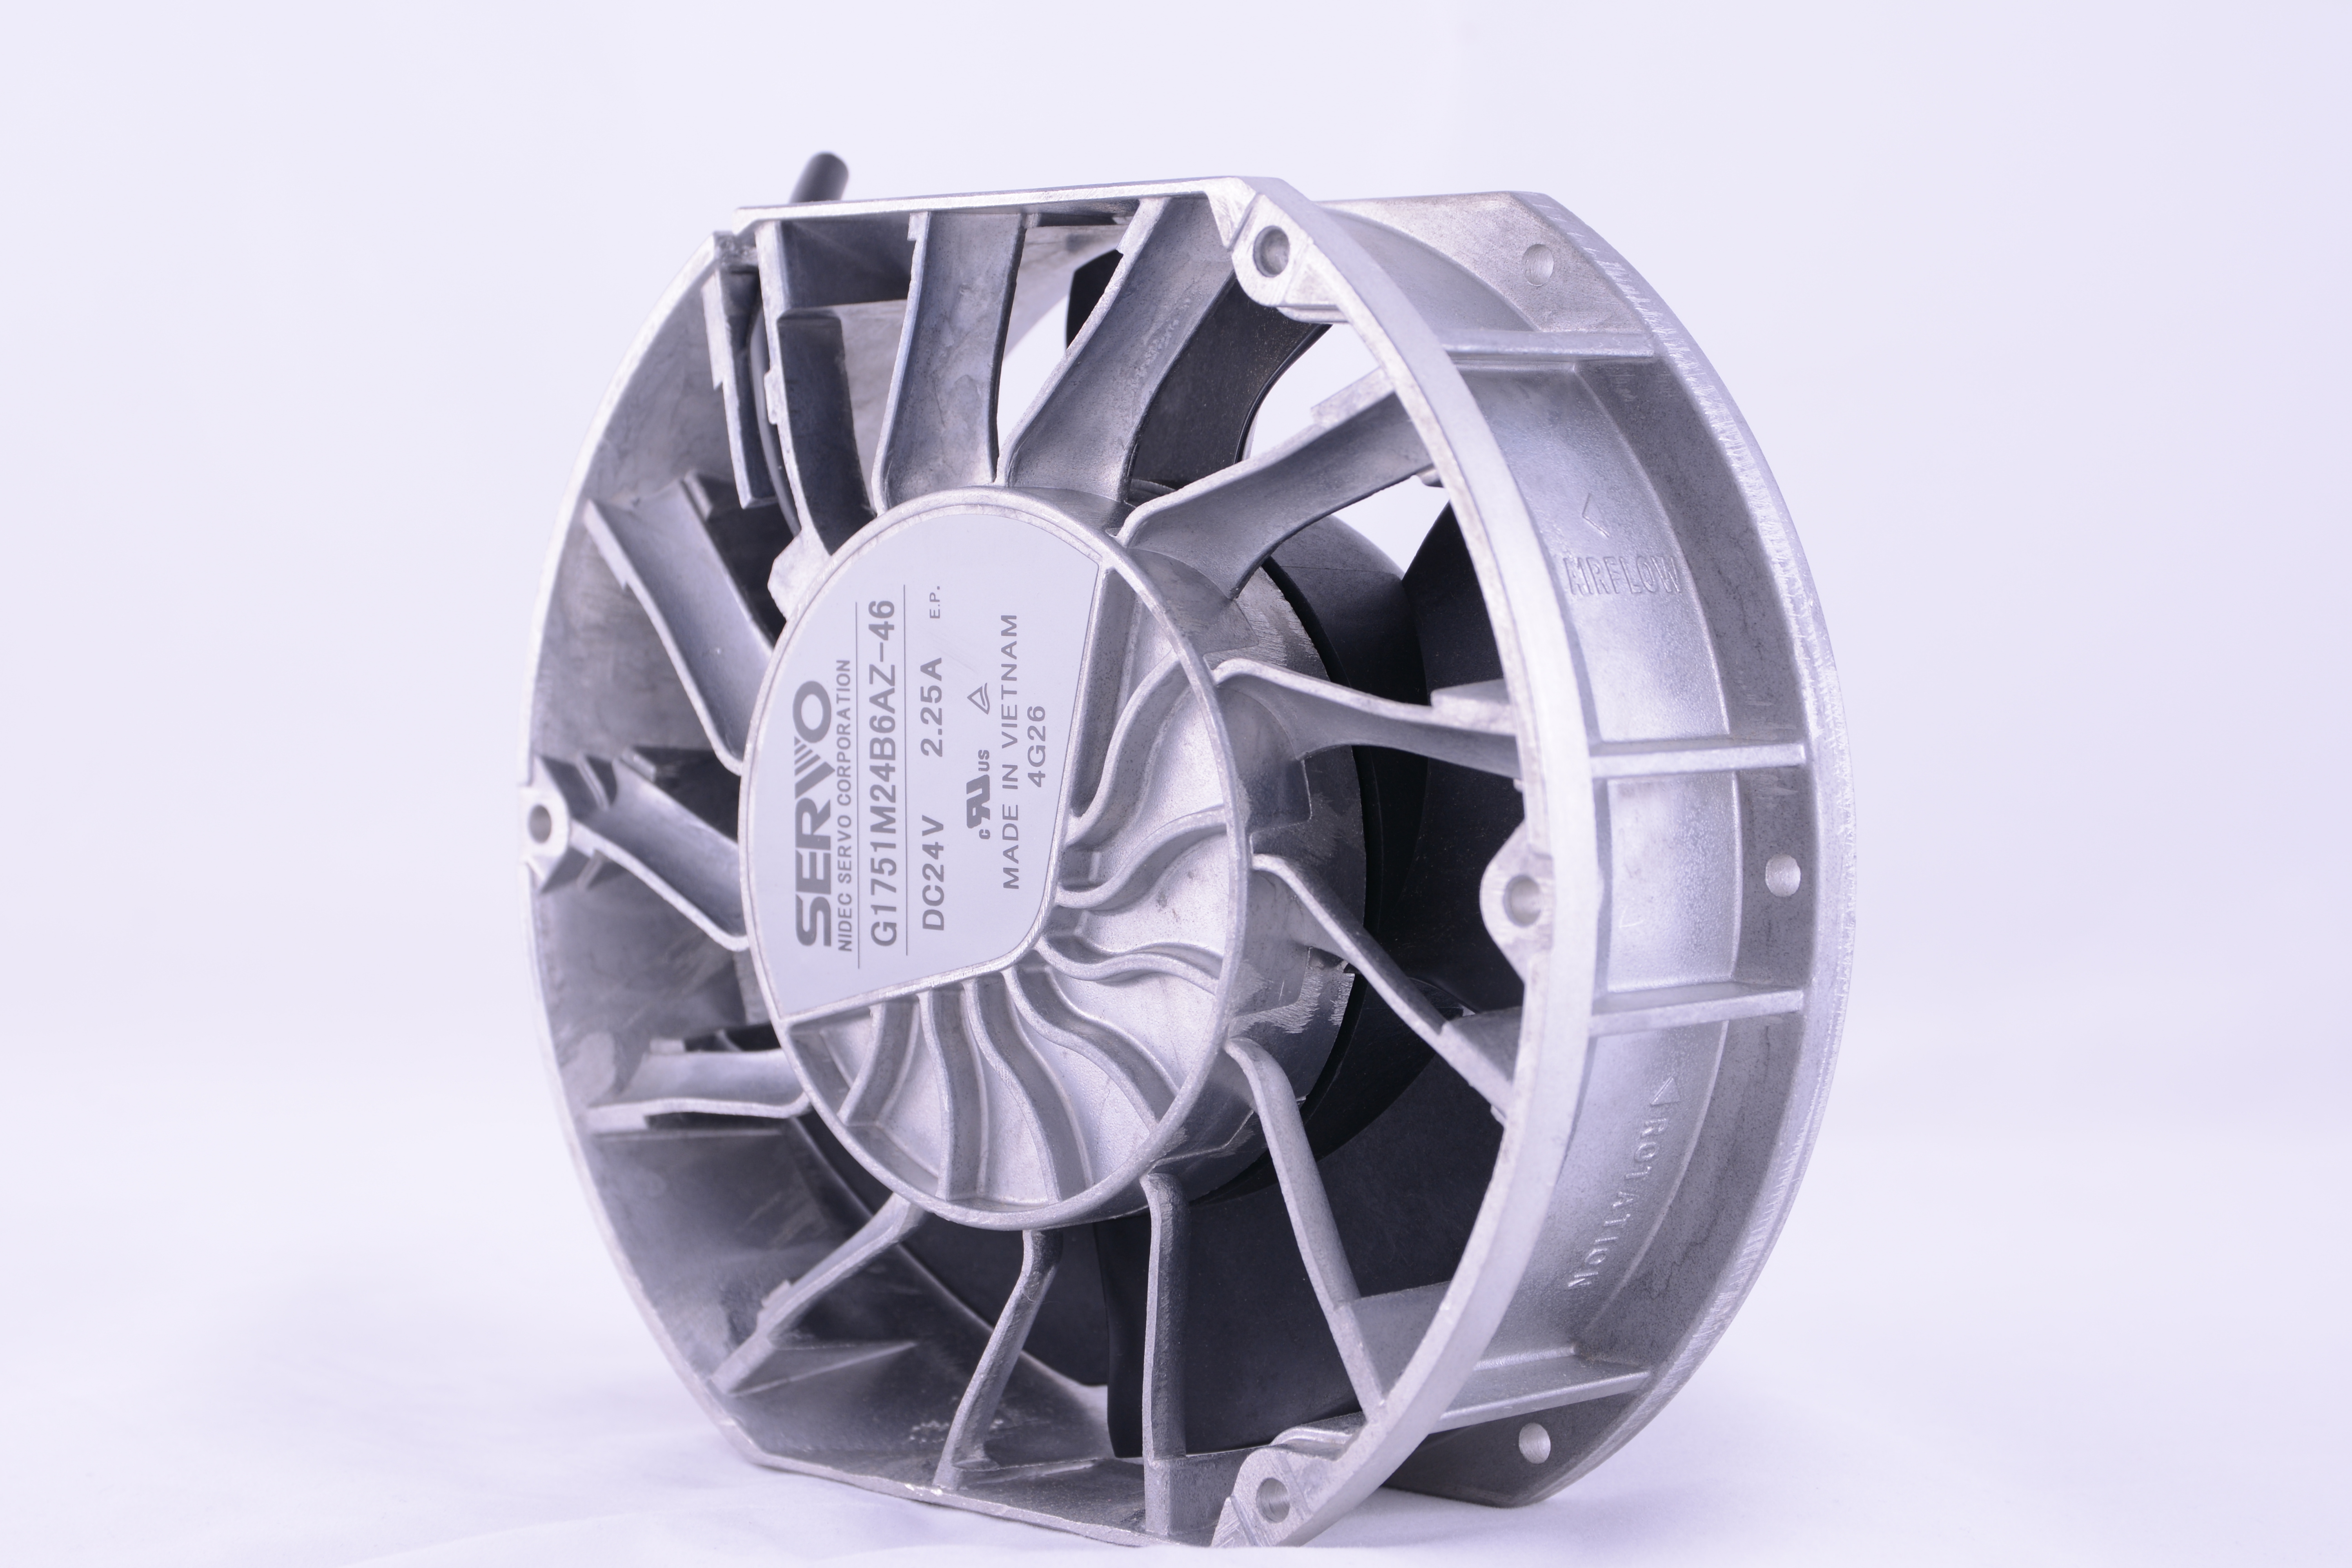 Design re-invents static pressure fans